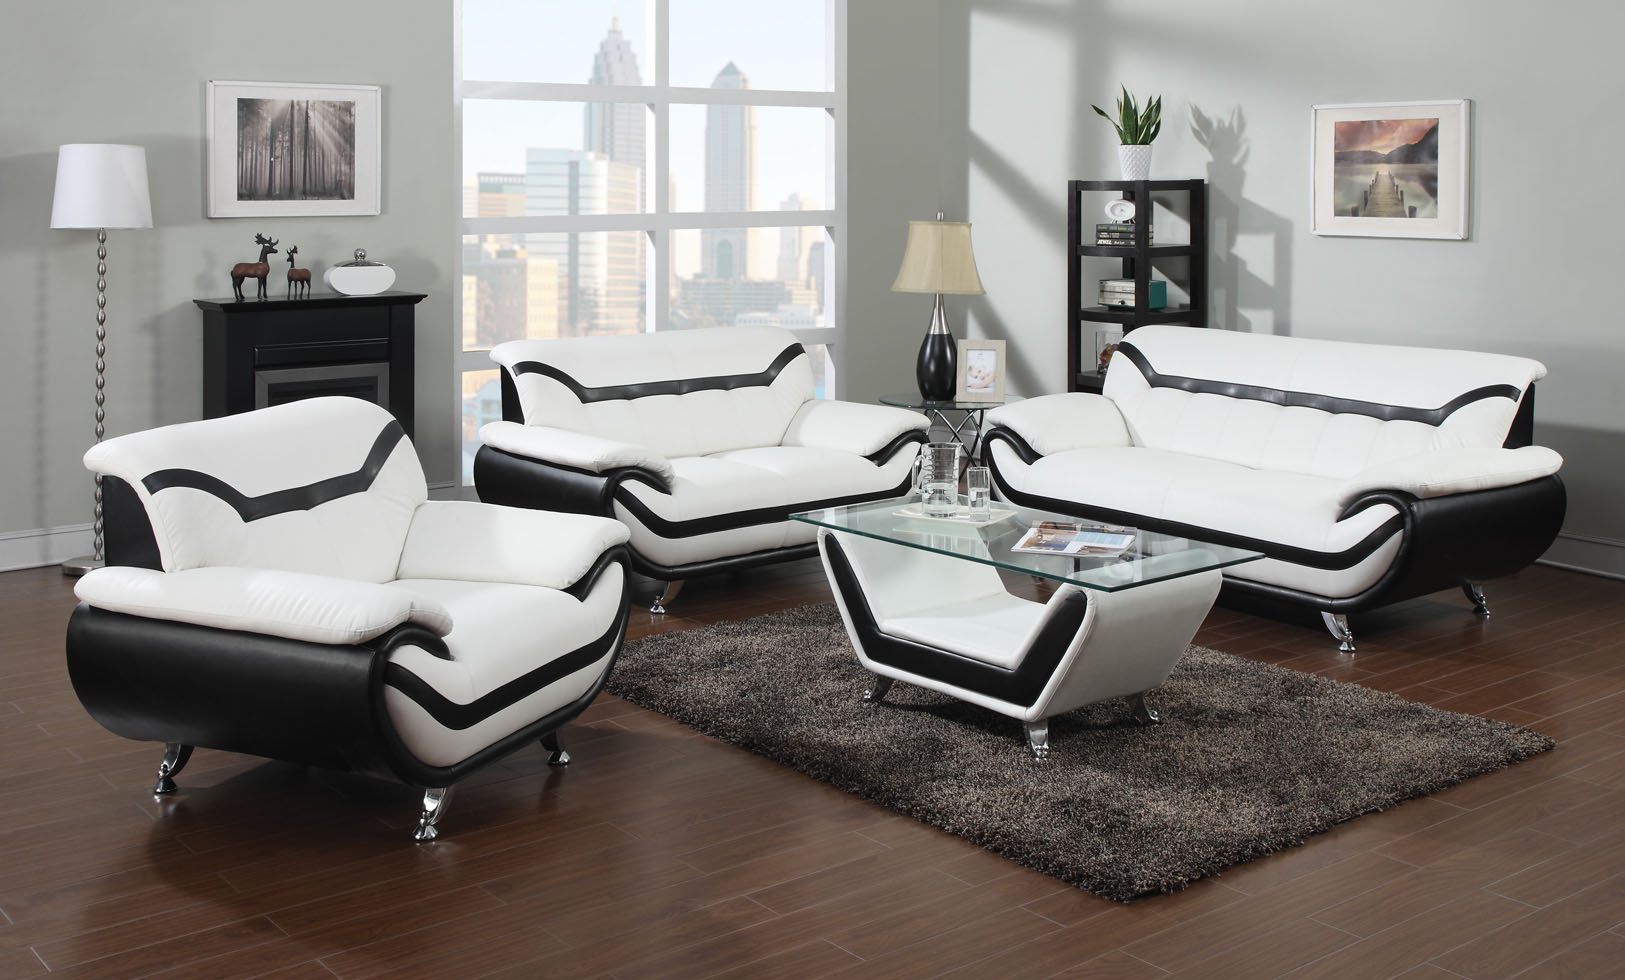 White Leather Couch 2 Piece Modern White Leather Sofas With Black Trim